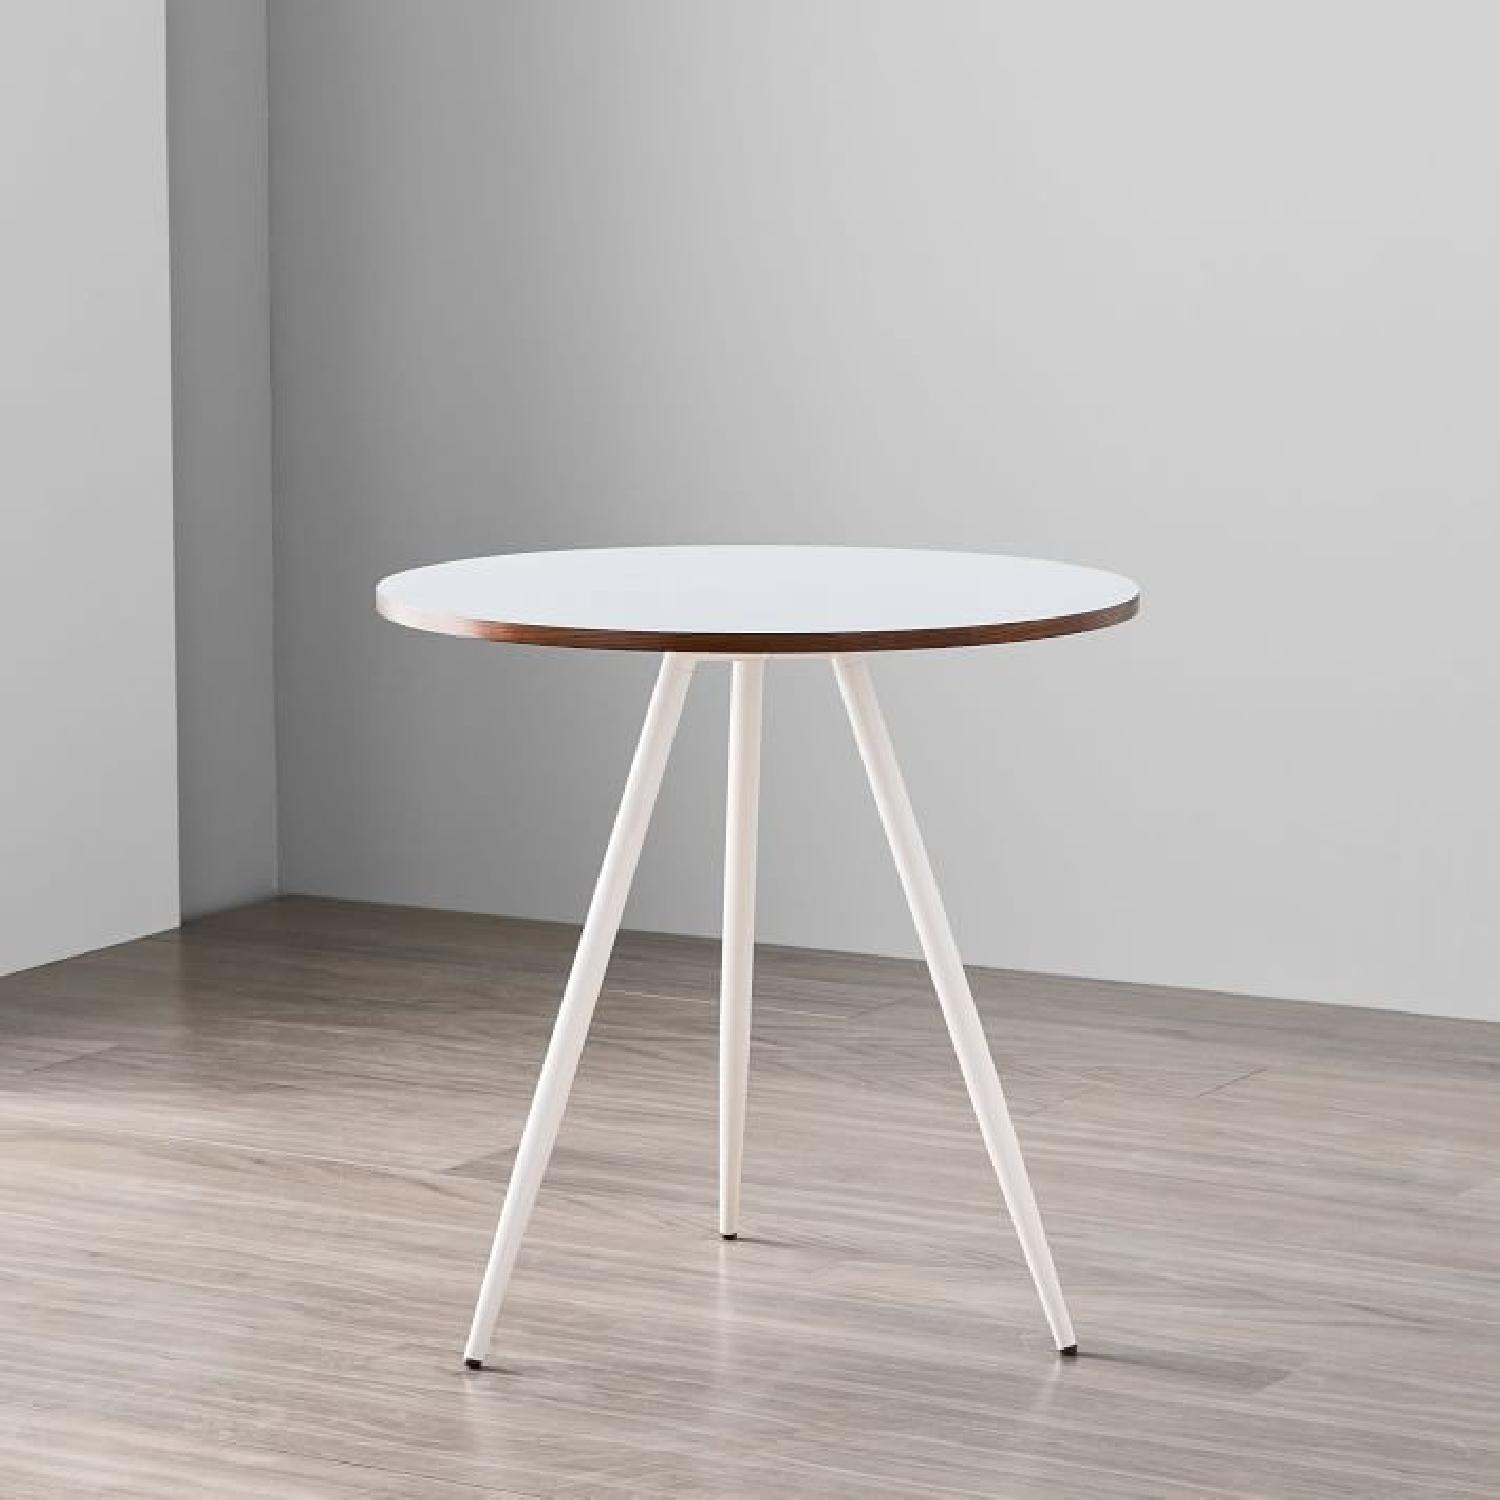 West Elm Wren Bistro Table in White - image-1